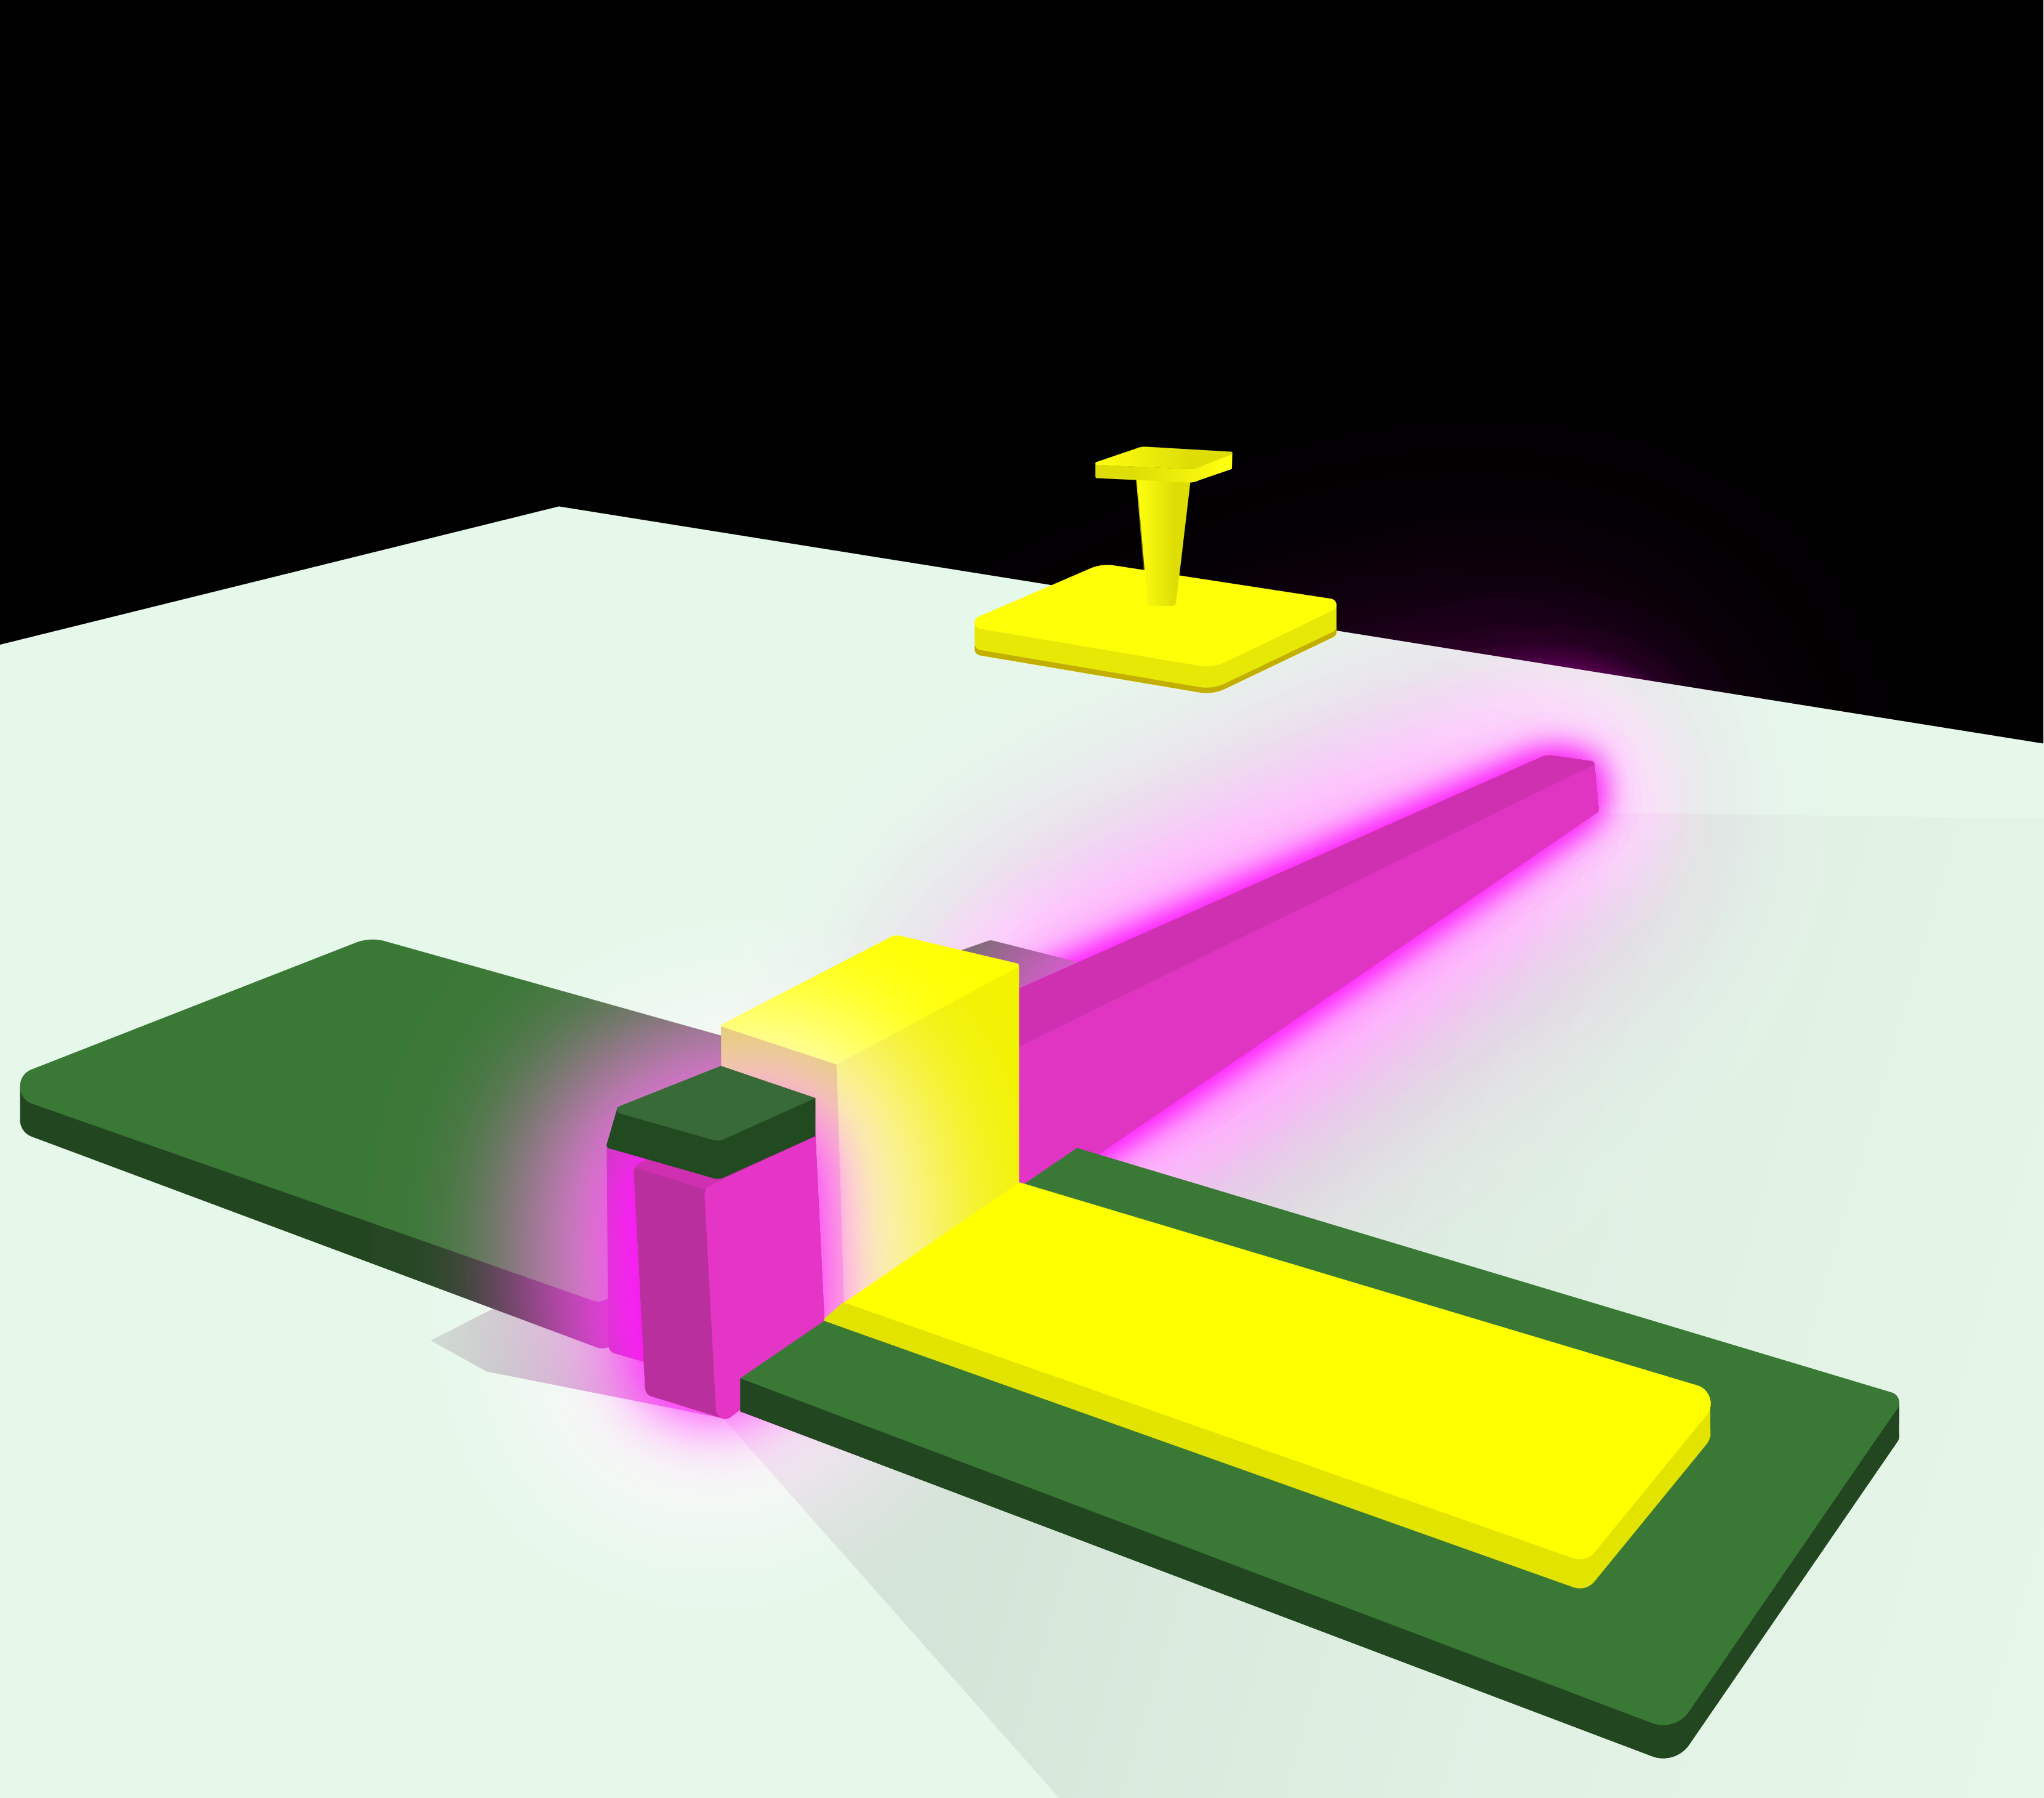 A glowing purple bar representing the LED is attached to a green surface by a yellow metal contact.